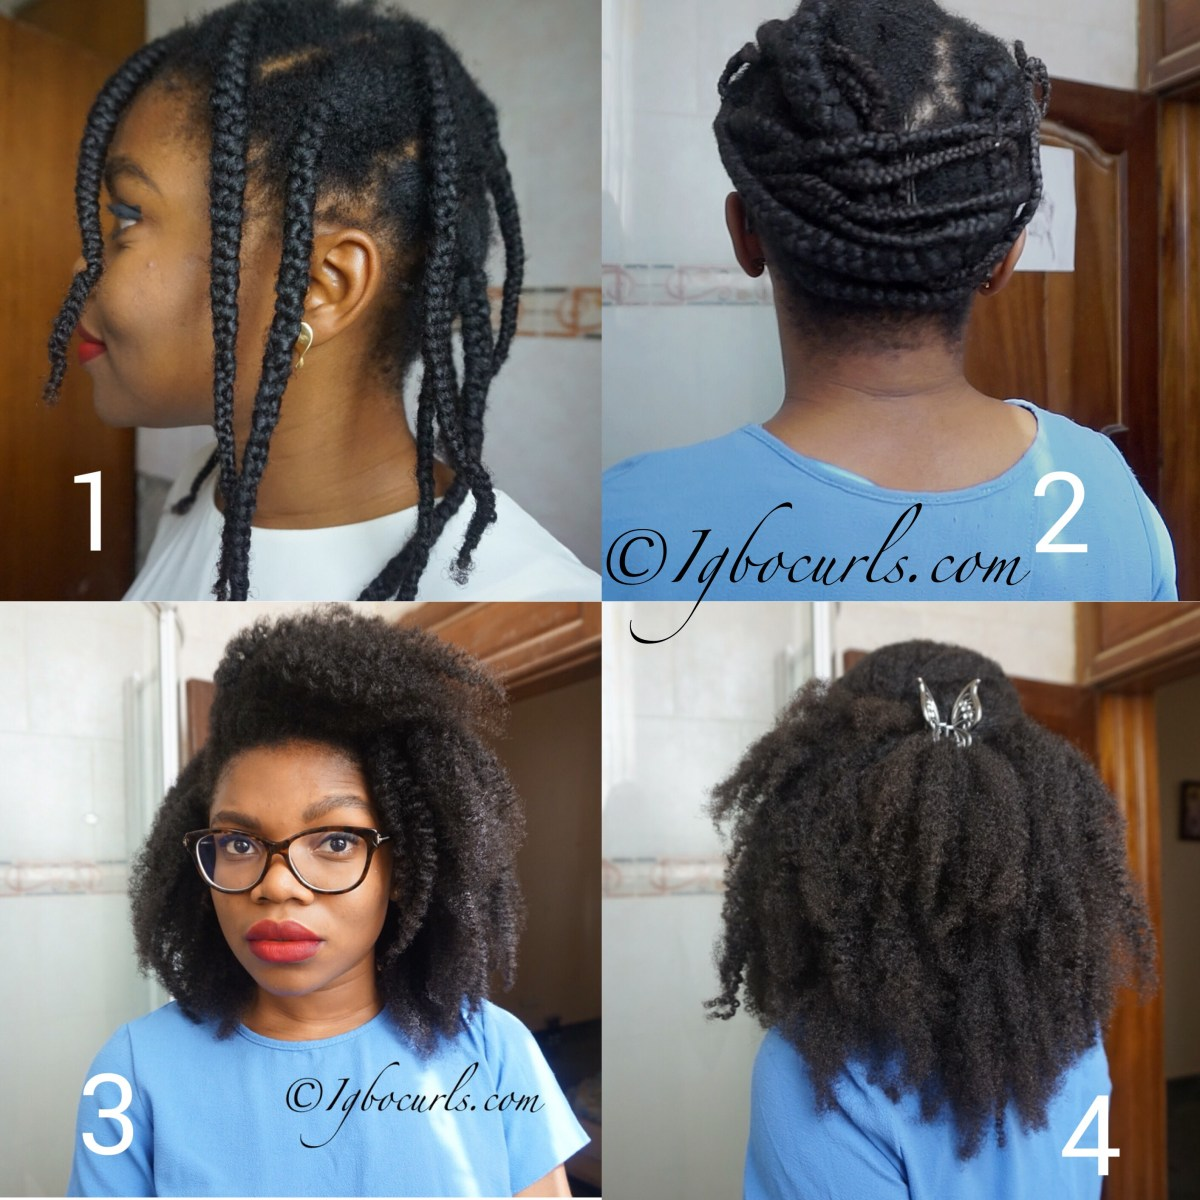 How To Stretch Natural Hair Without Heat - Braid Out